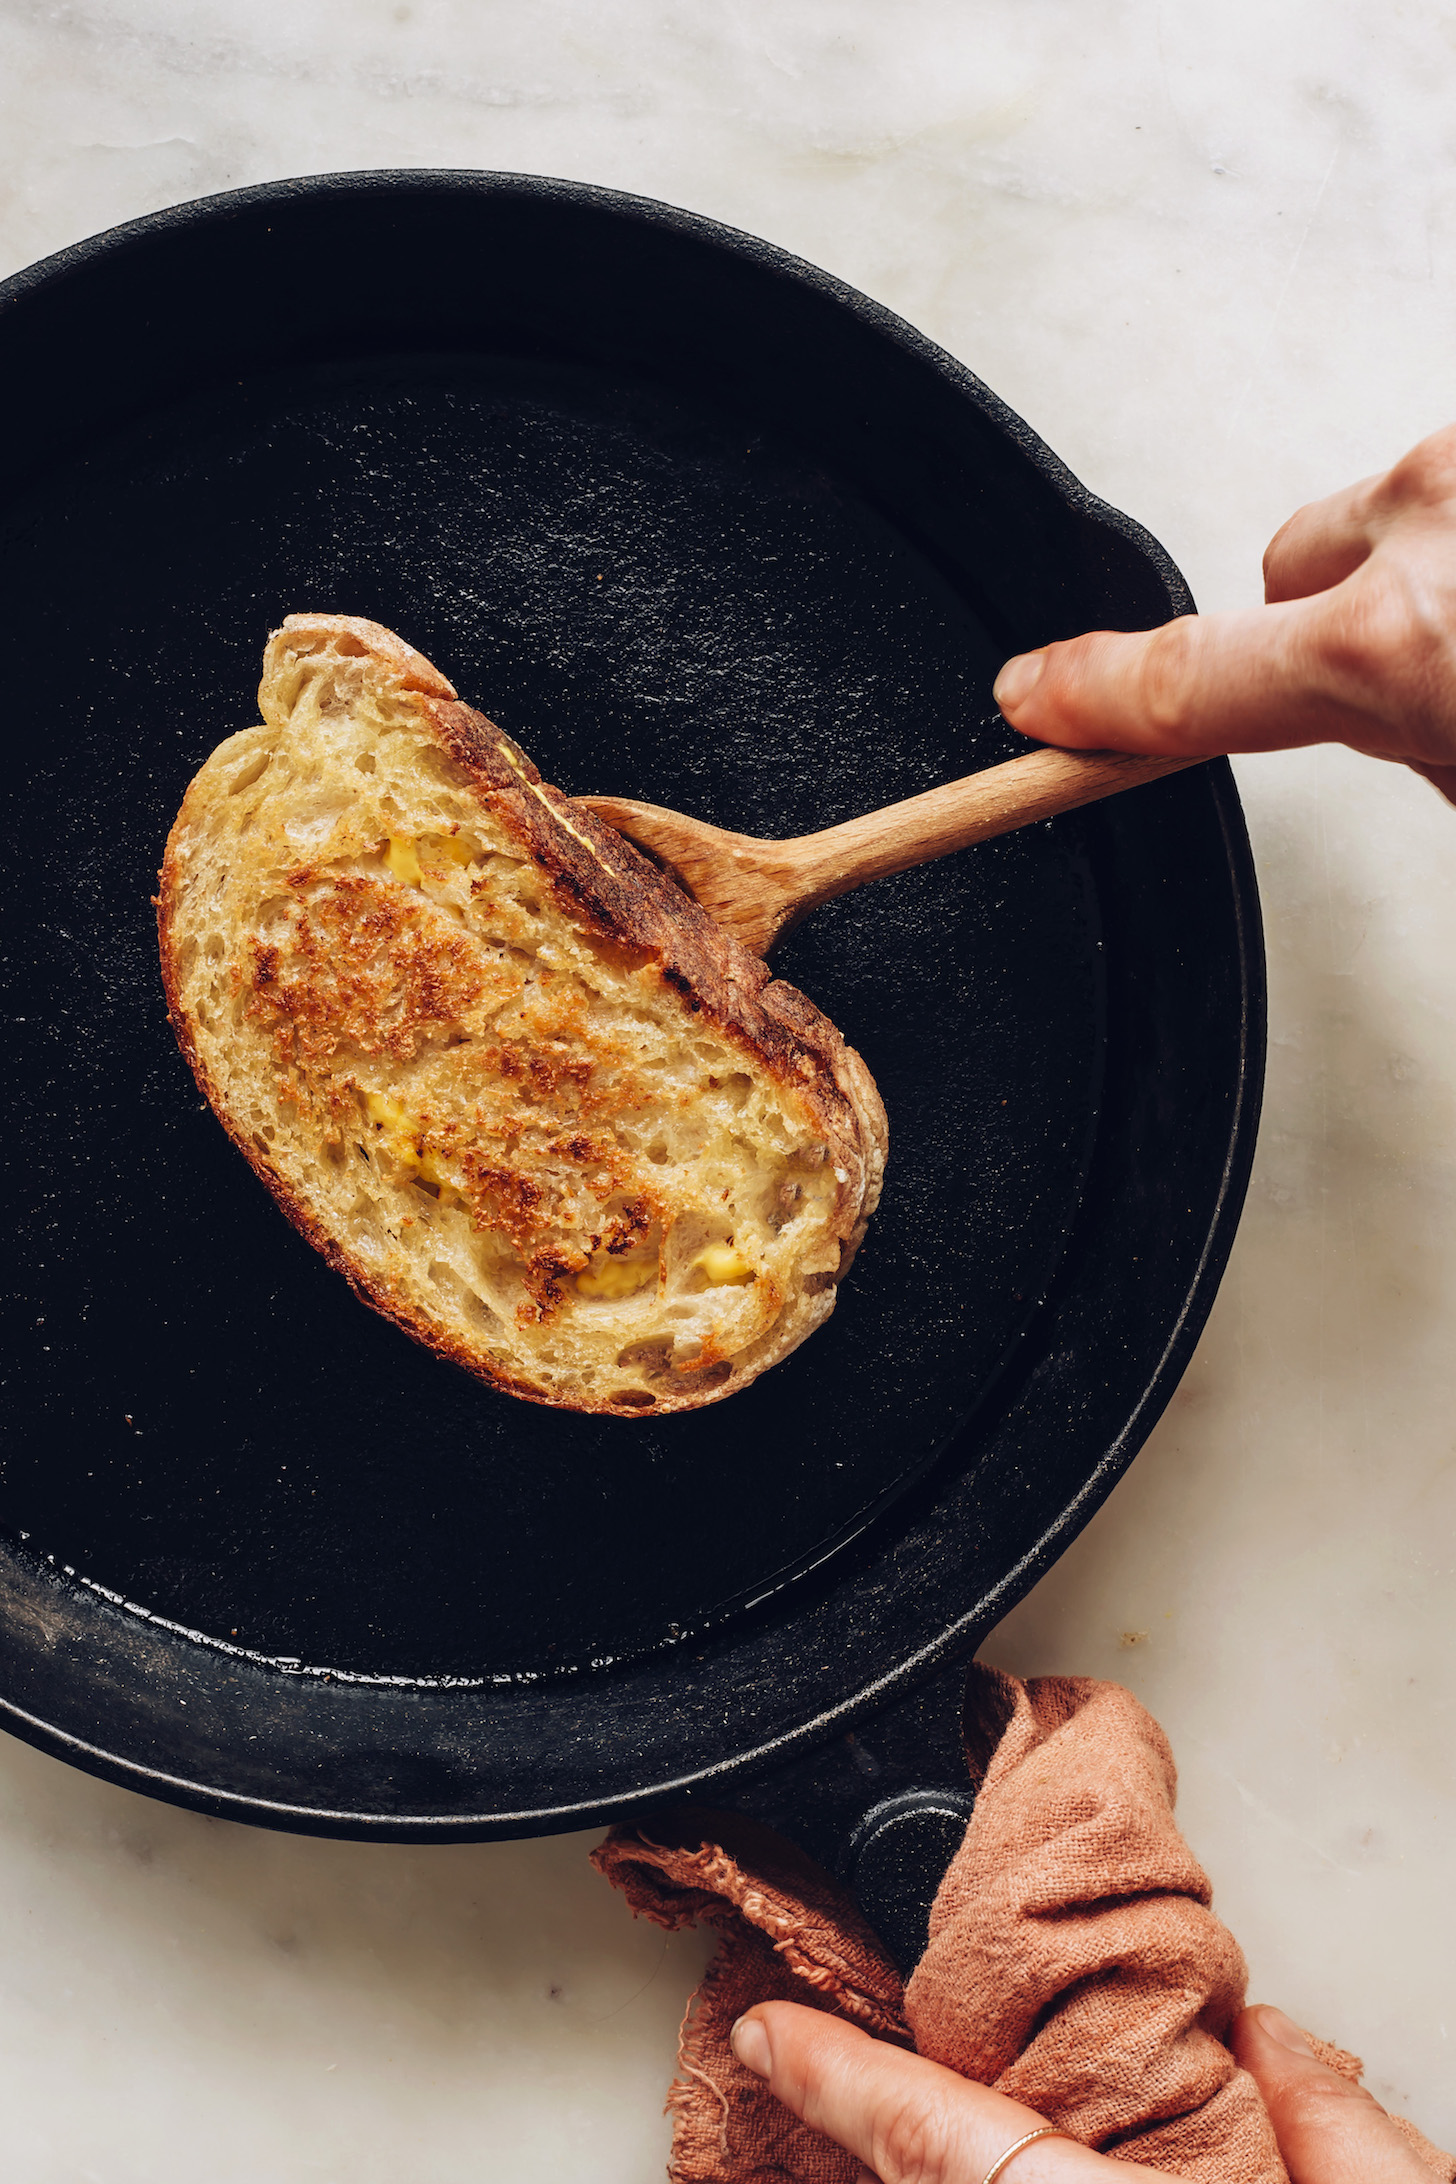 Using a wooden spoon to flip a vegan grilled cheese in a cast iron pan